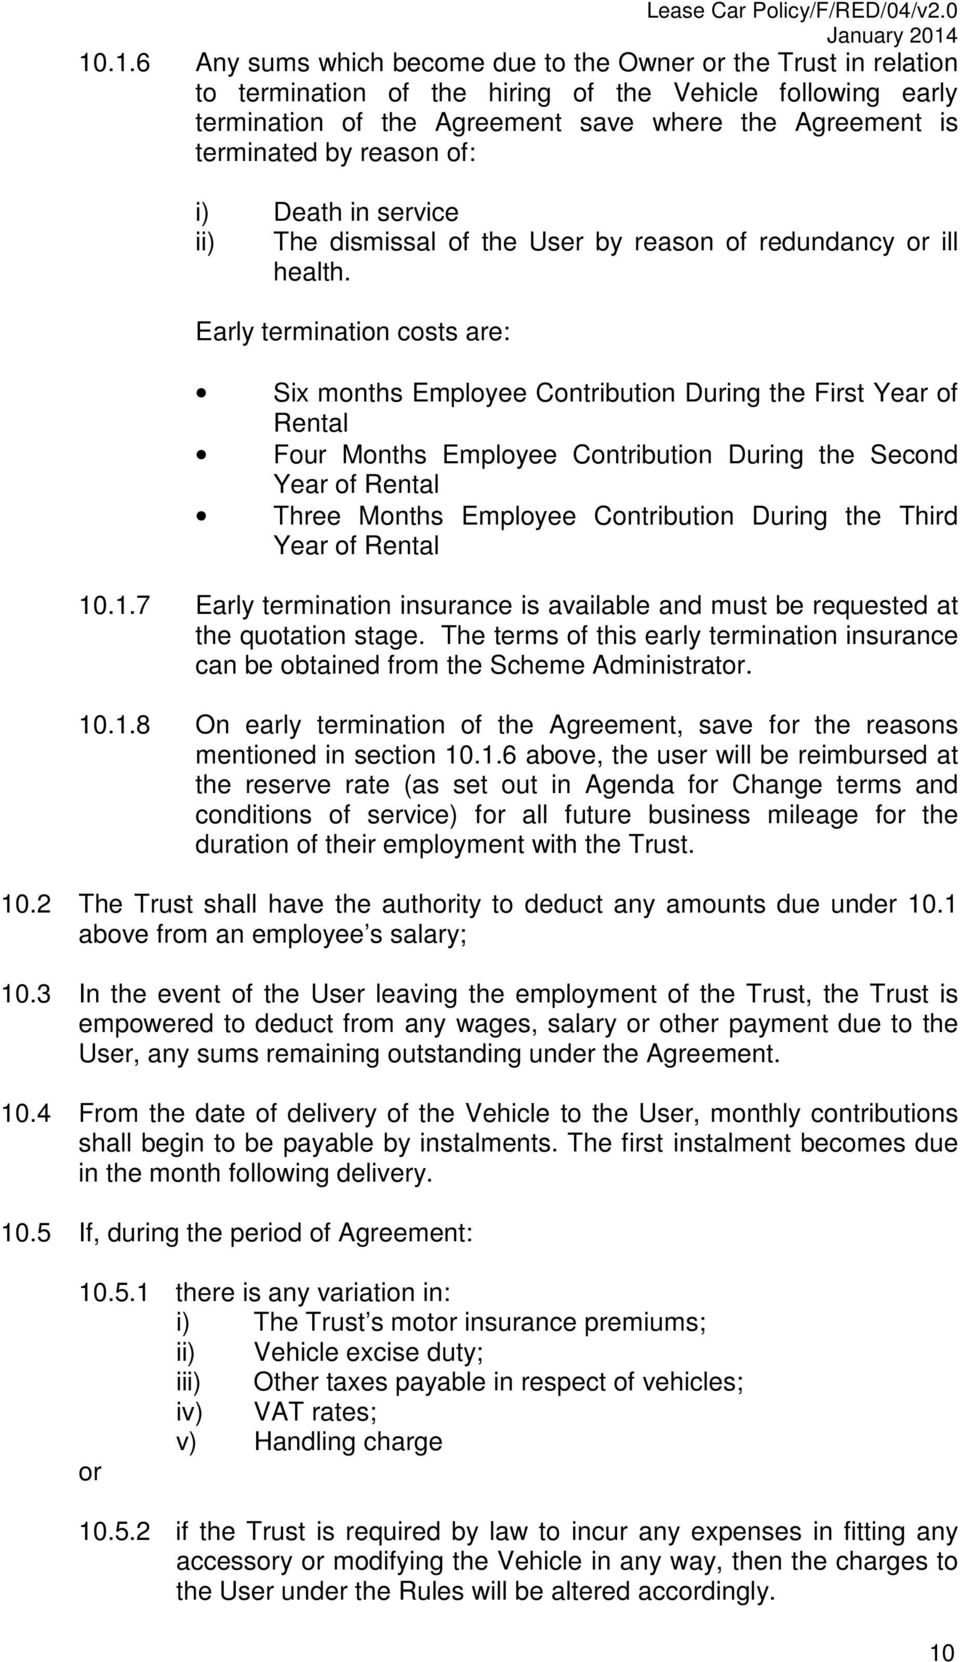 Early termination costs are: Six months Employee Contribution During the First Year of Rental Four Months Employee Contribution During the Second Year of Rental Three Months Employee Contribution